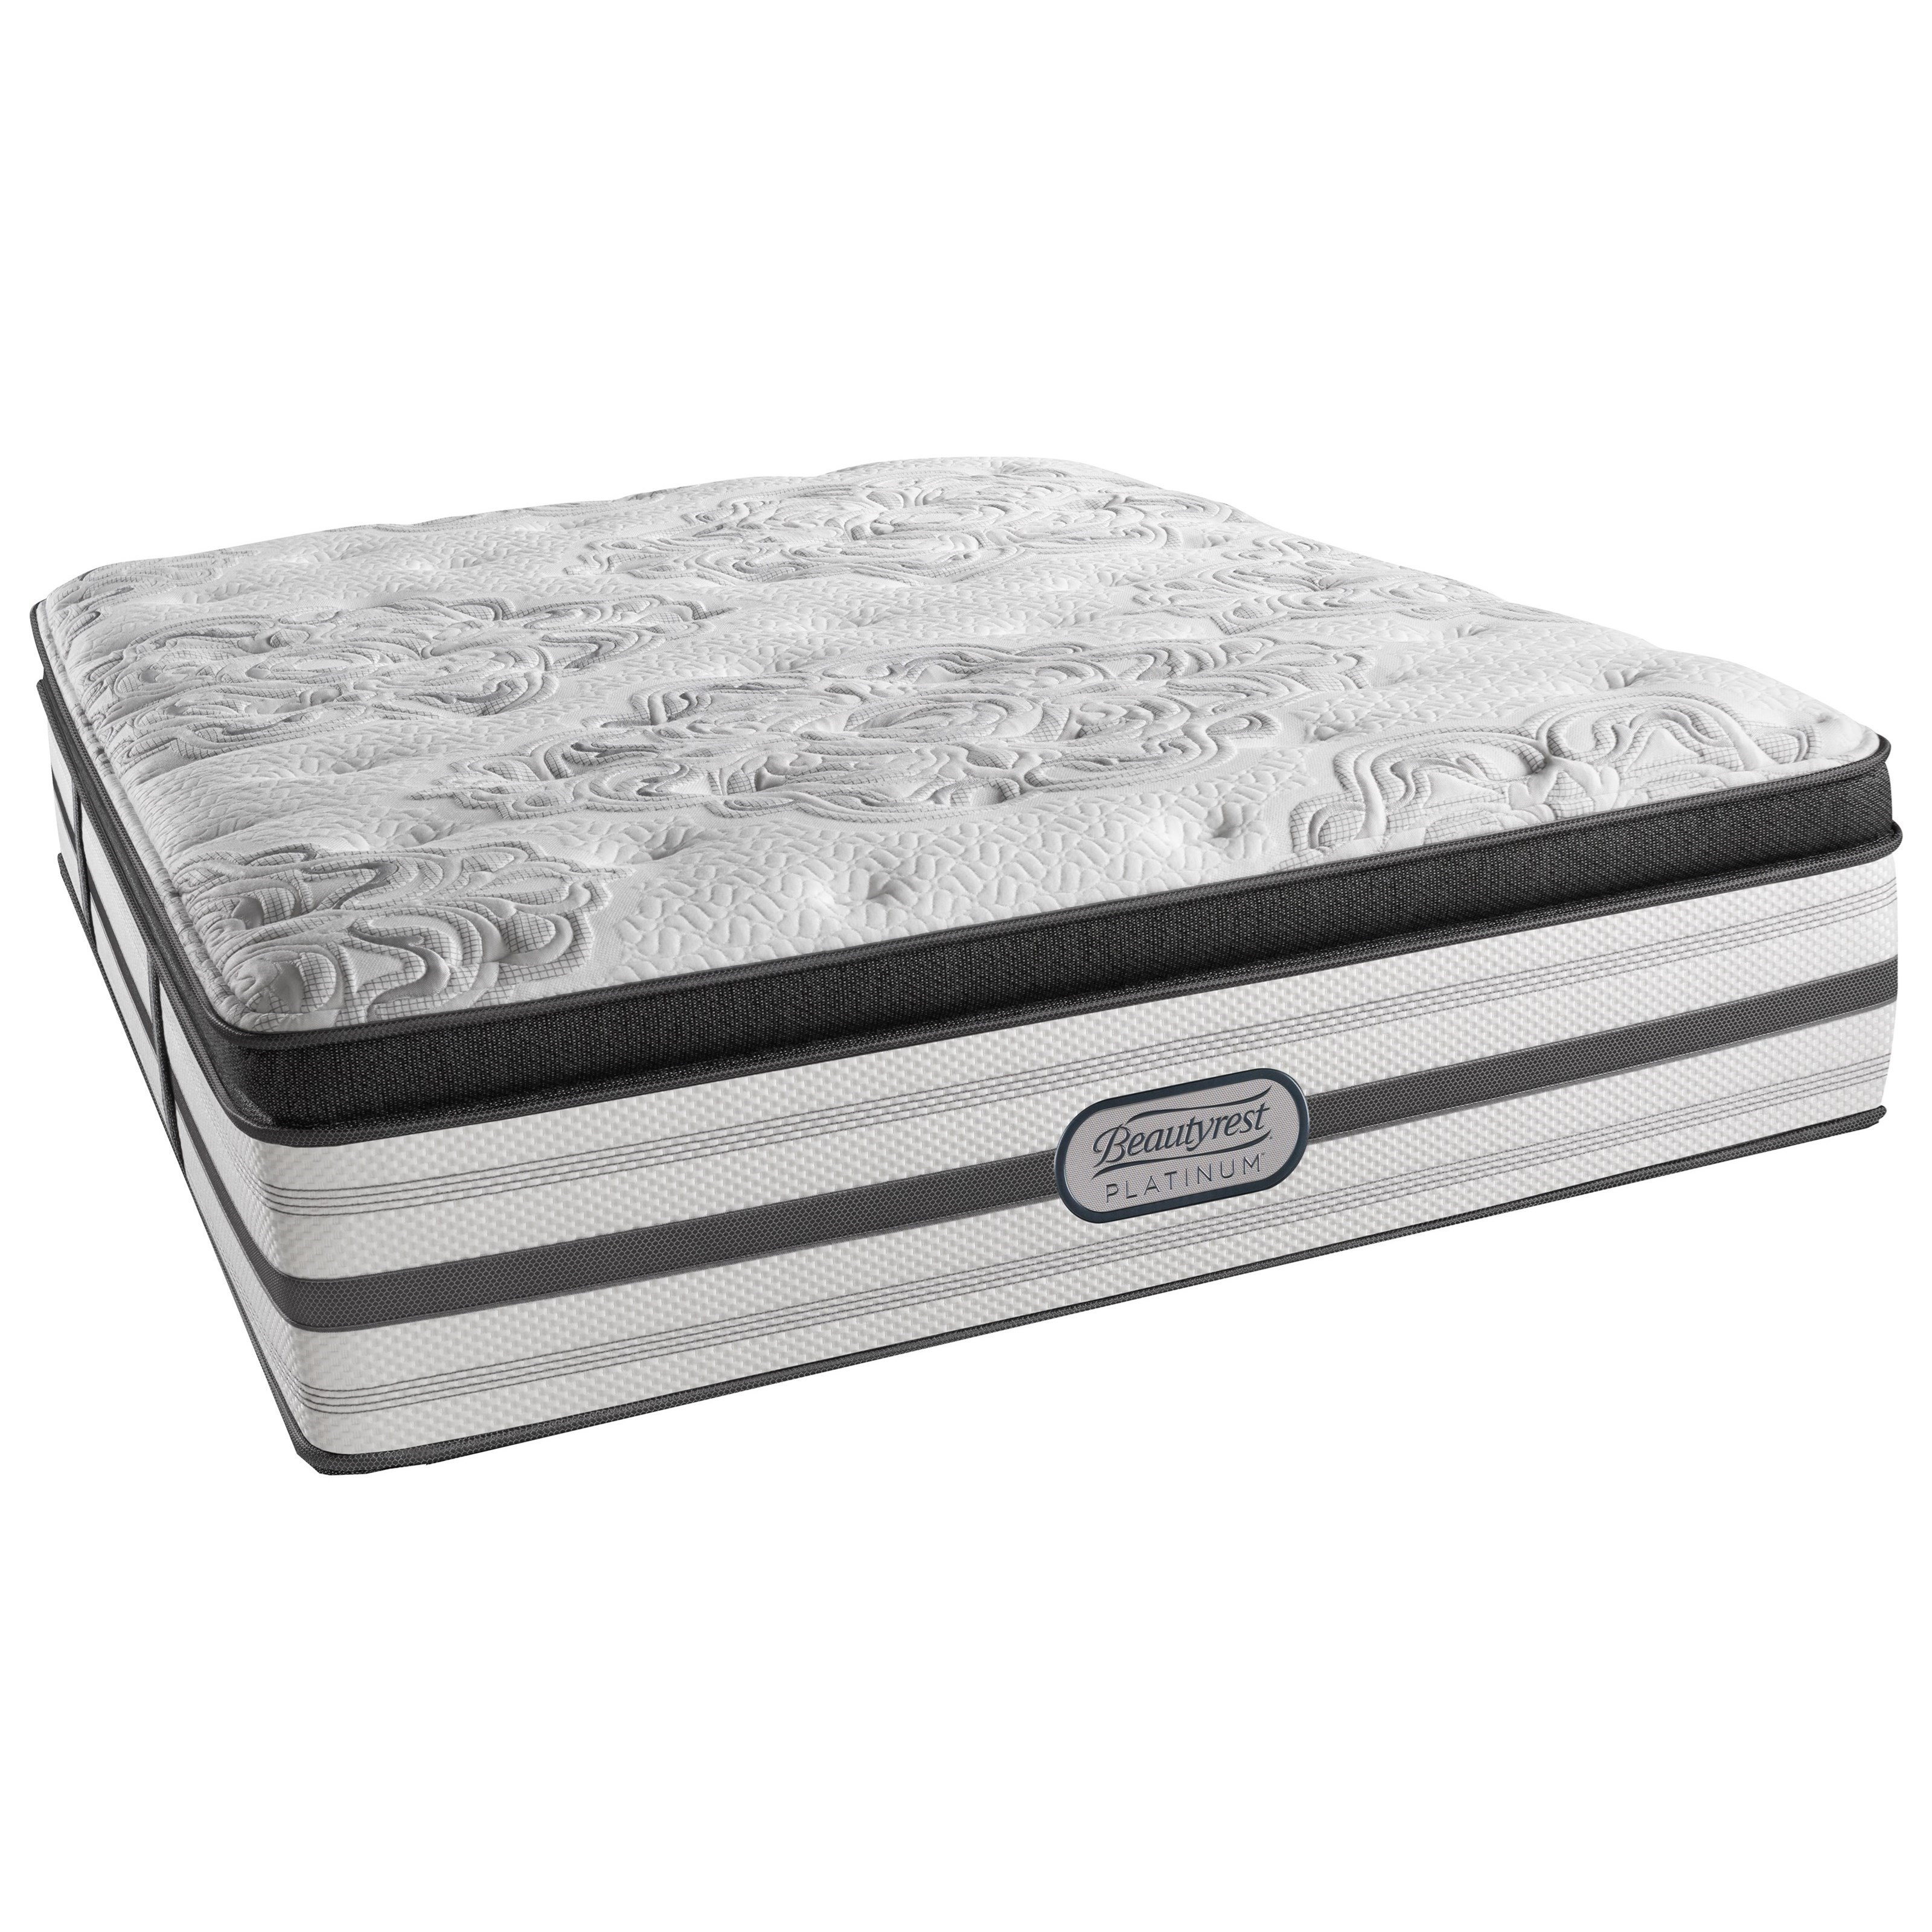 Beautyrest Platinum Katherine Twin XL Plush Box Top Mattress - Item Number: LV4PLBT-TXL